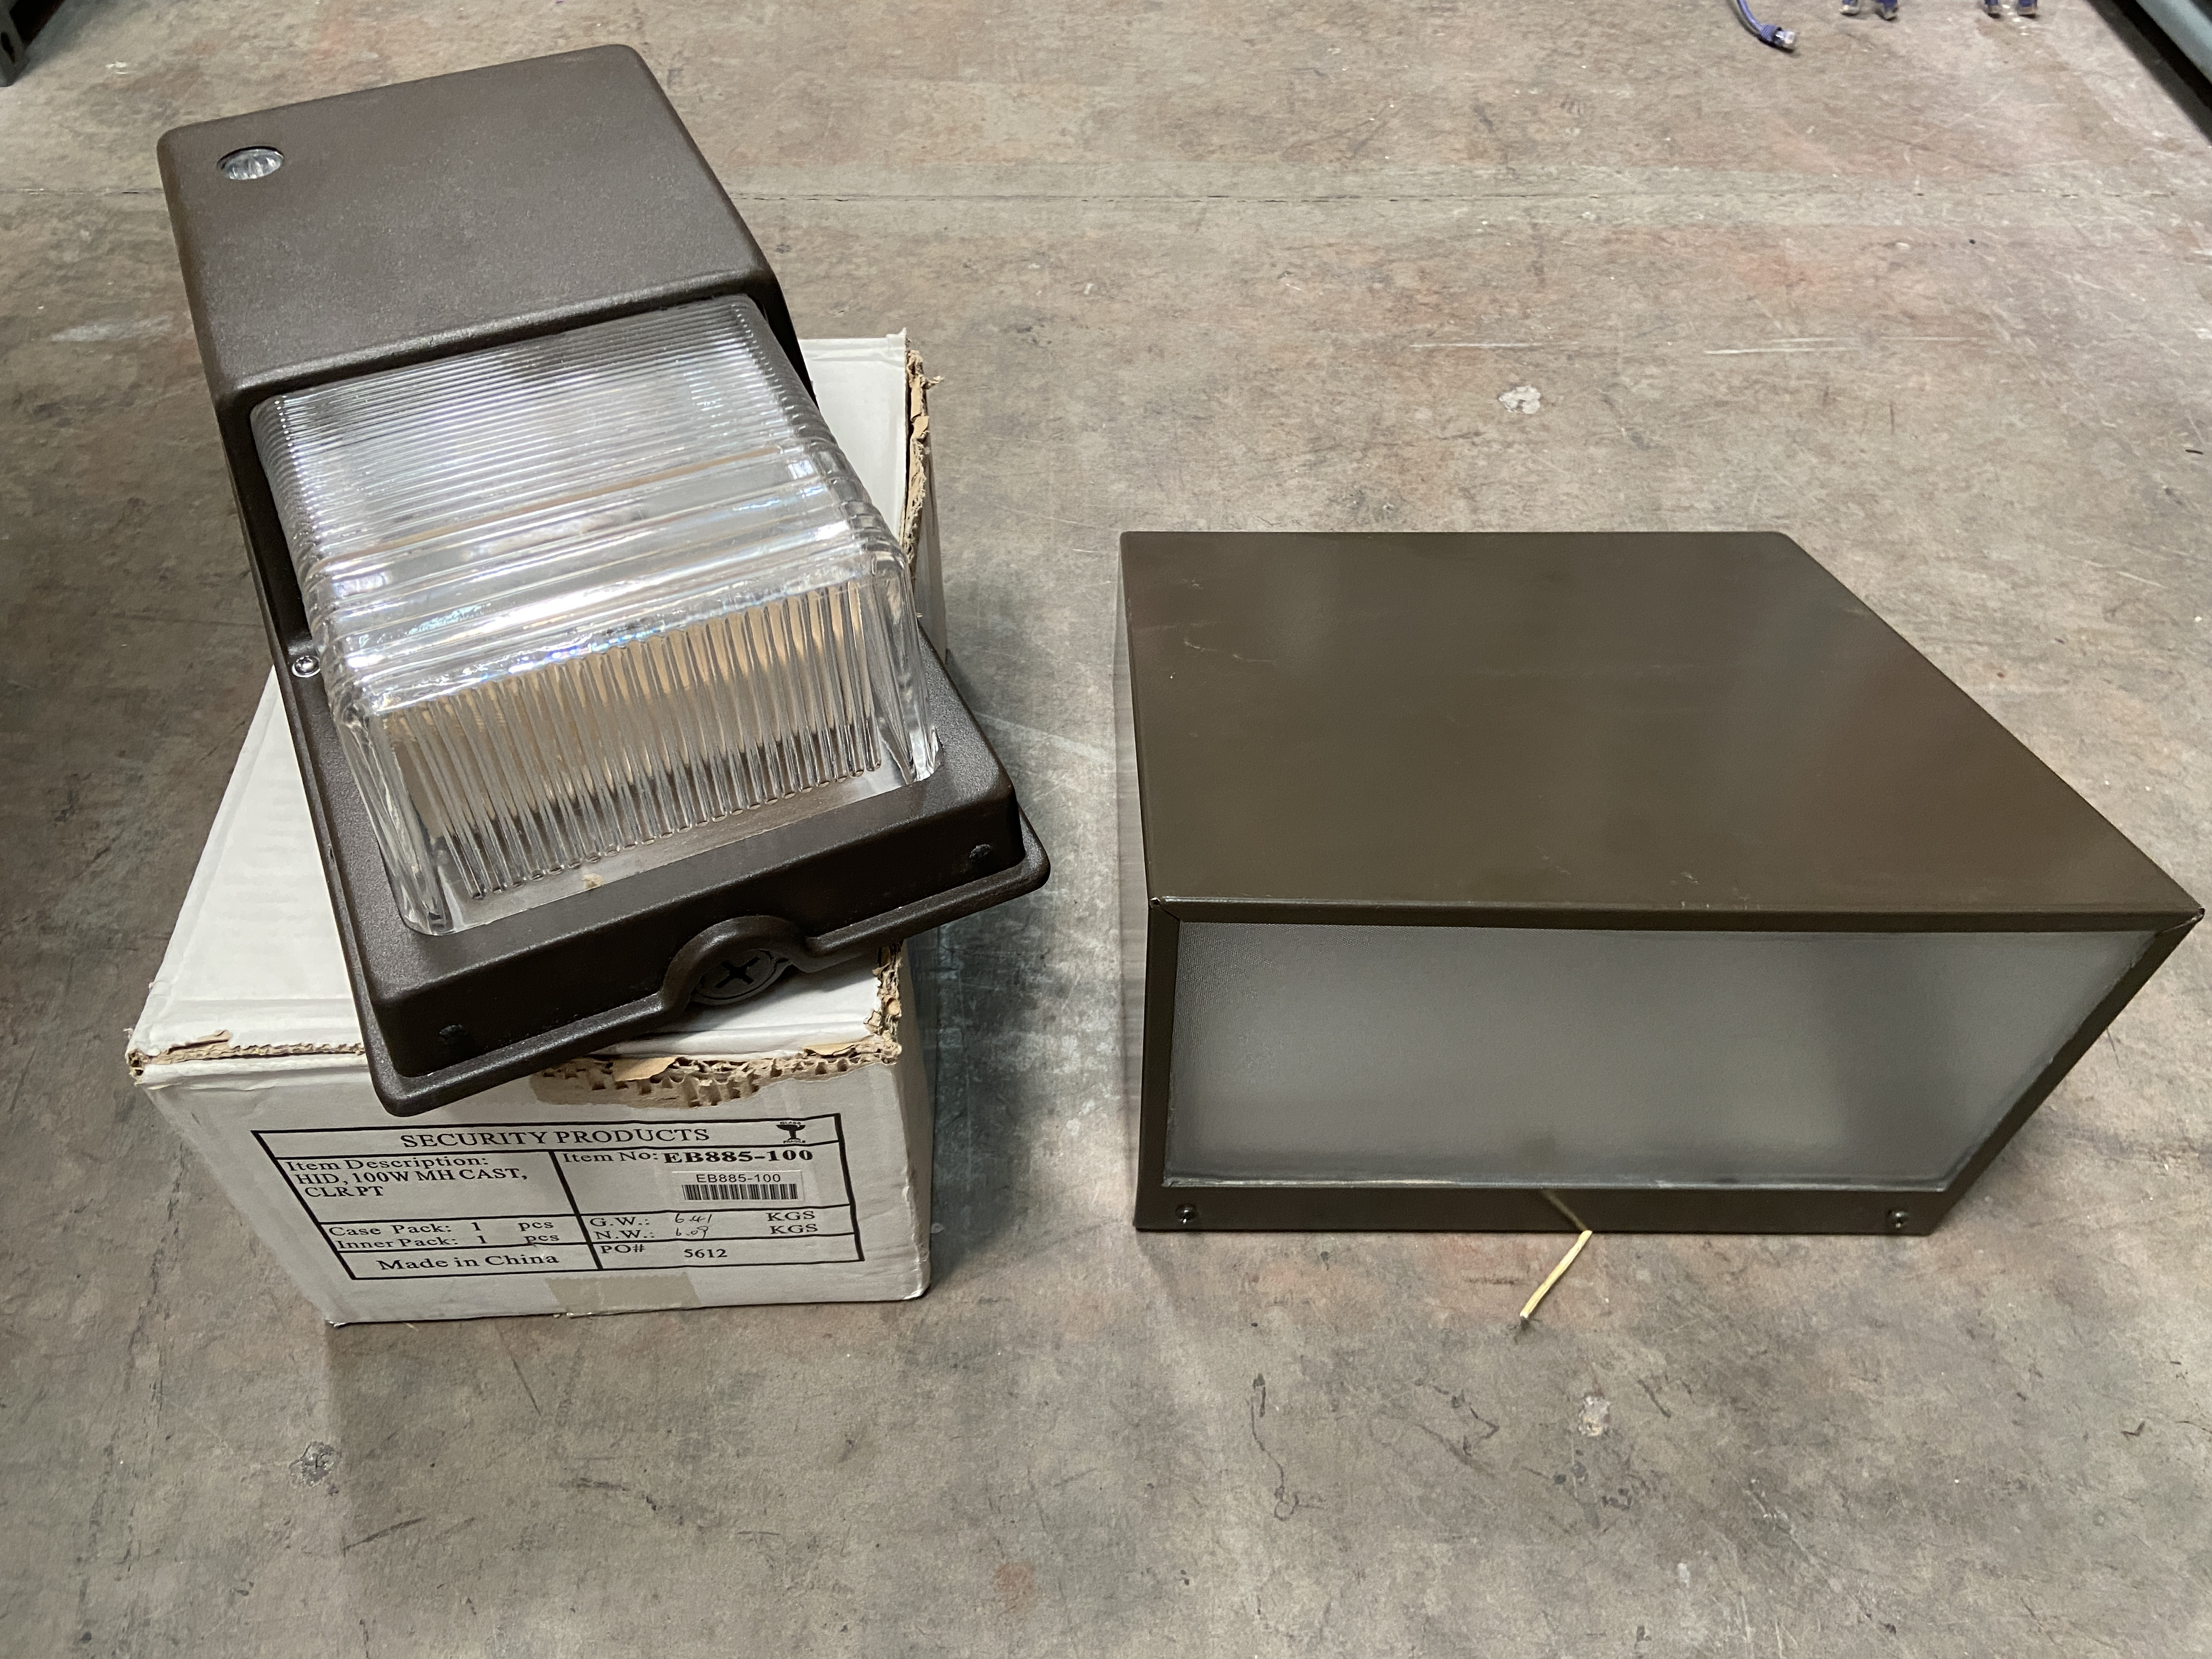 Lot 1V - 2 New Commercial Industrial Light Fixtures